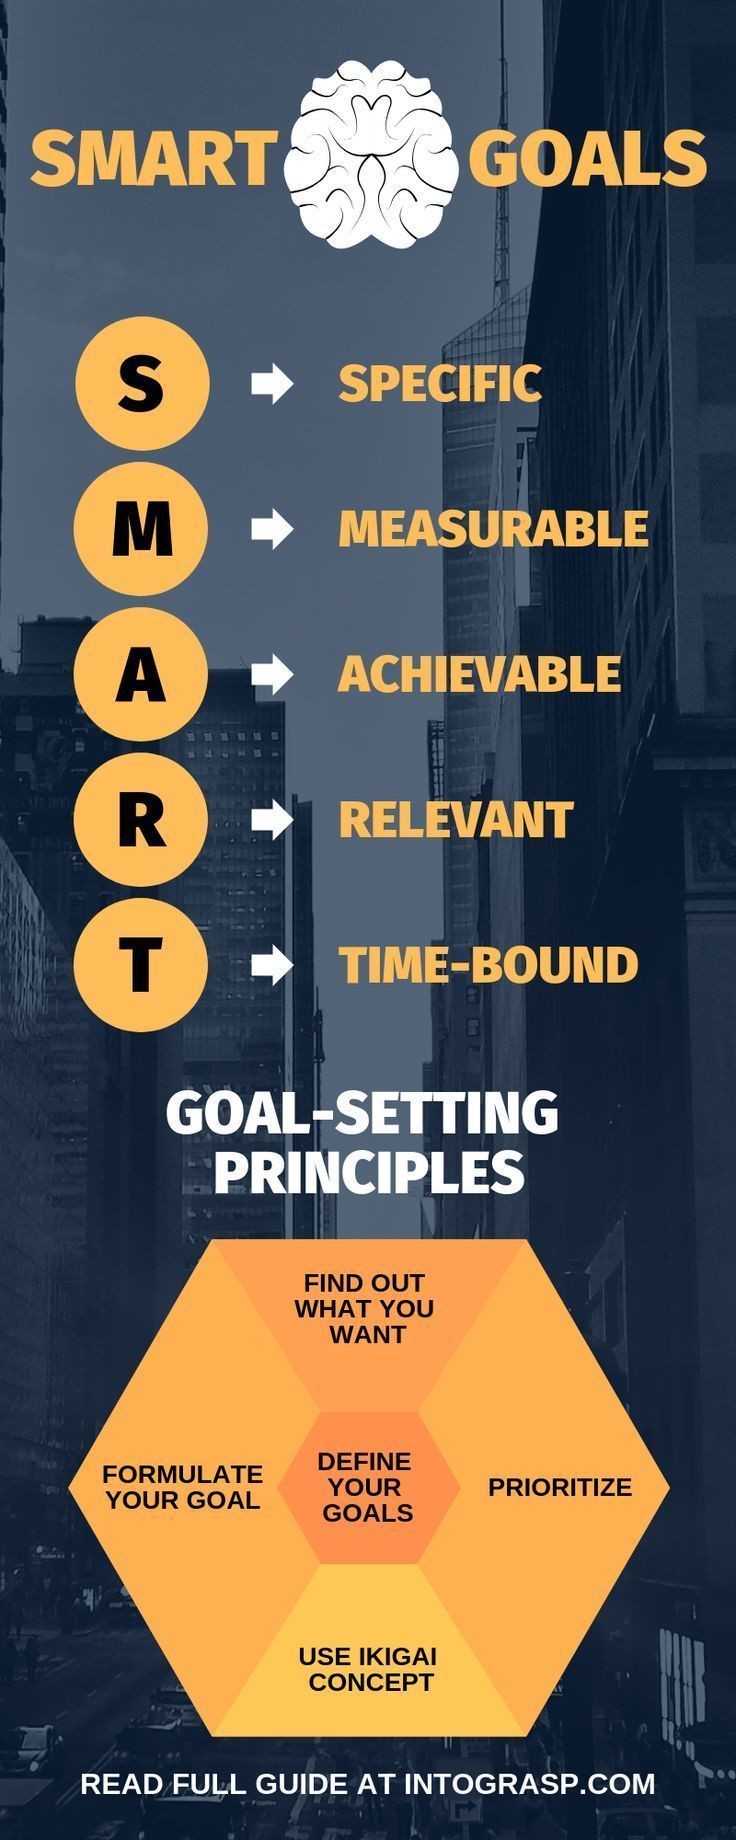 SMART Goals Complete Guide (Boost Goal-Setting 117%)